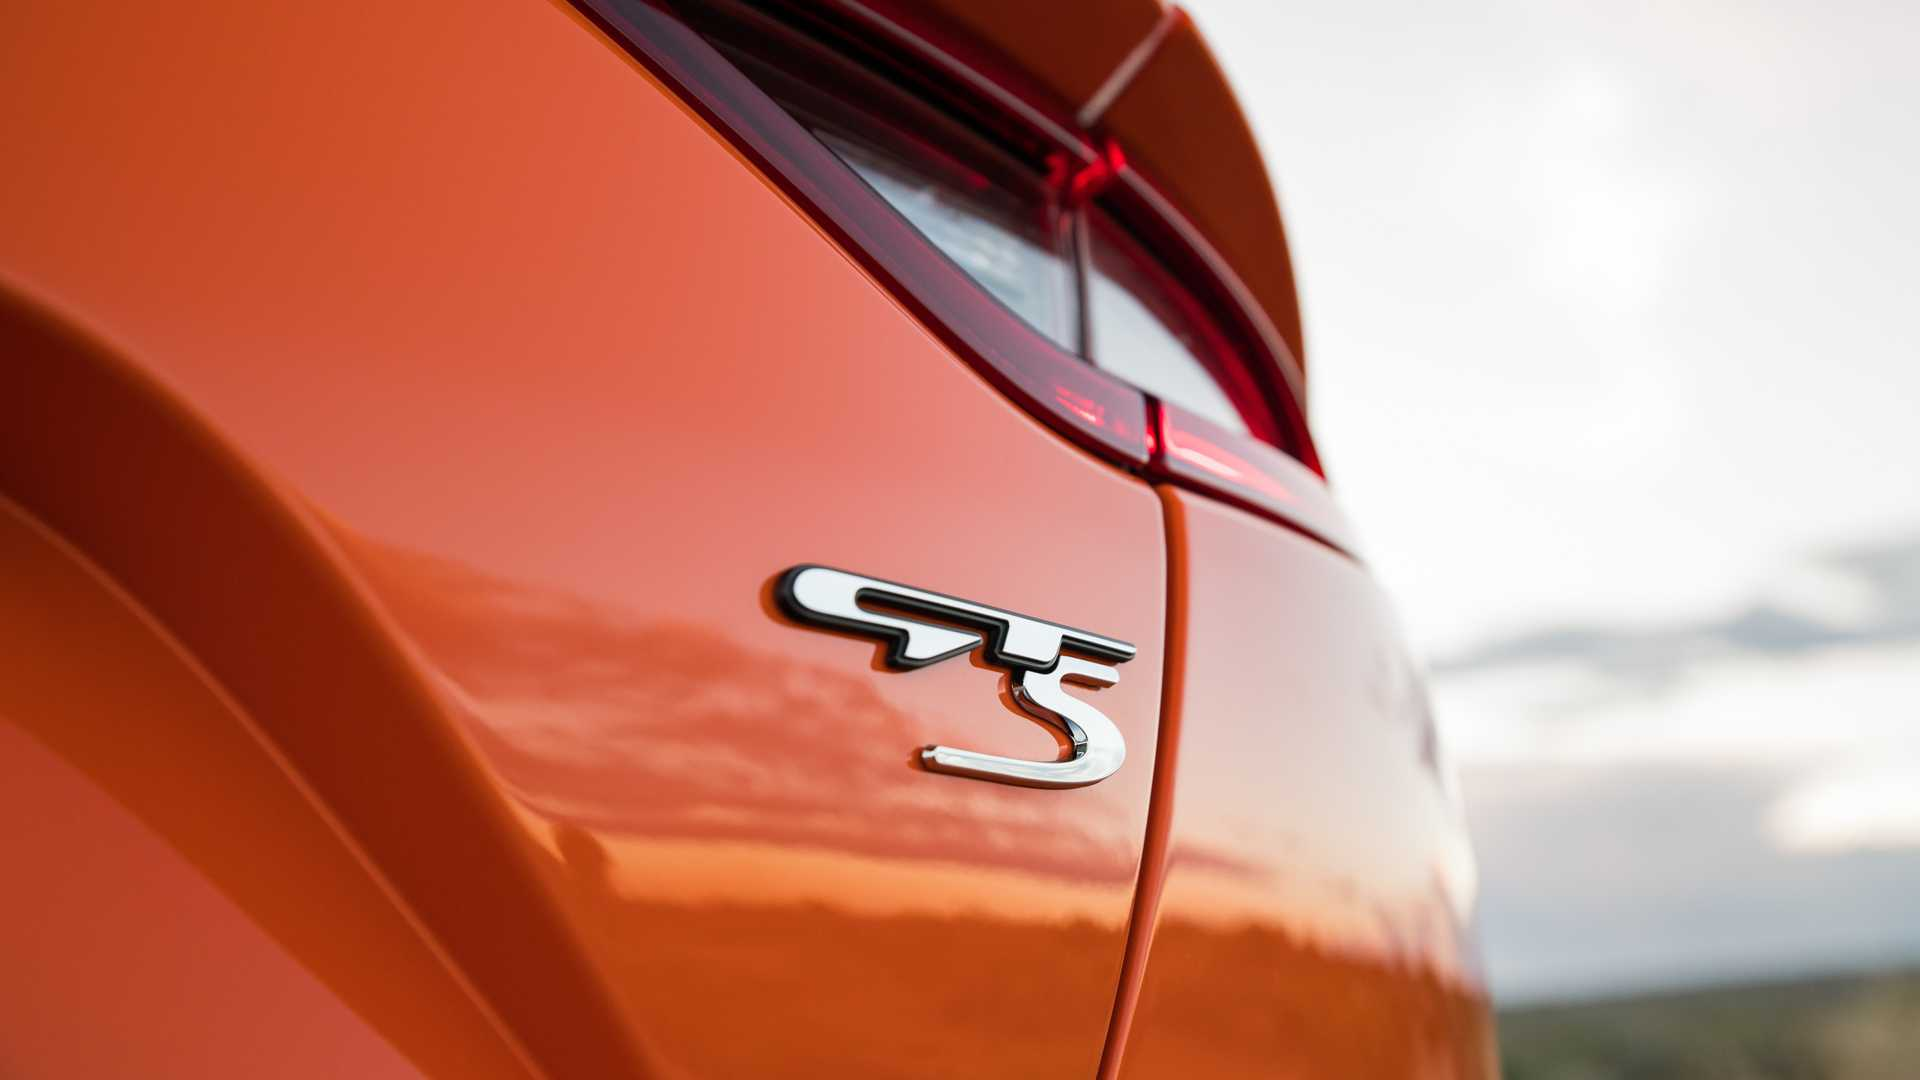 2020 Kia Stinger GTS Badge Wallpaper (14)